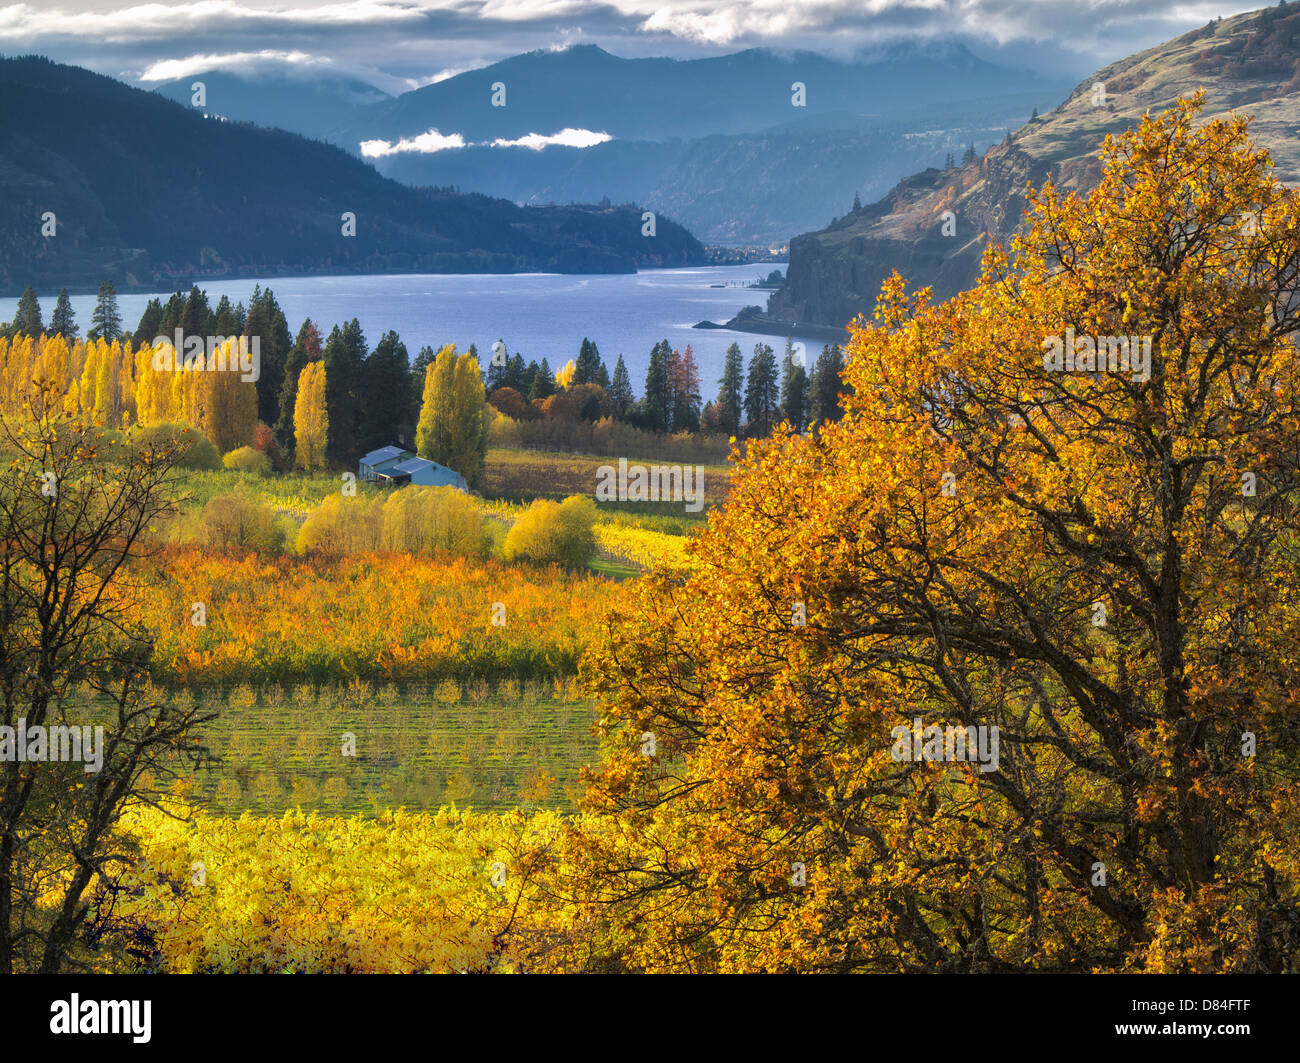 Orchard in fall colors and Columbia River. Columbia River Gorge National Scenic Area. Oregon - Stock Image